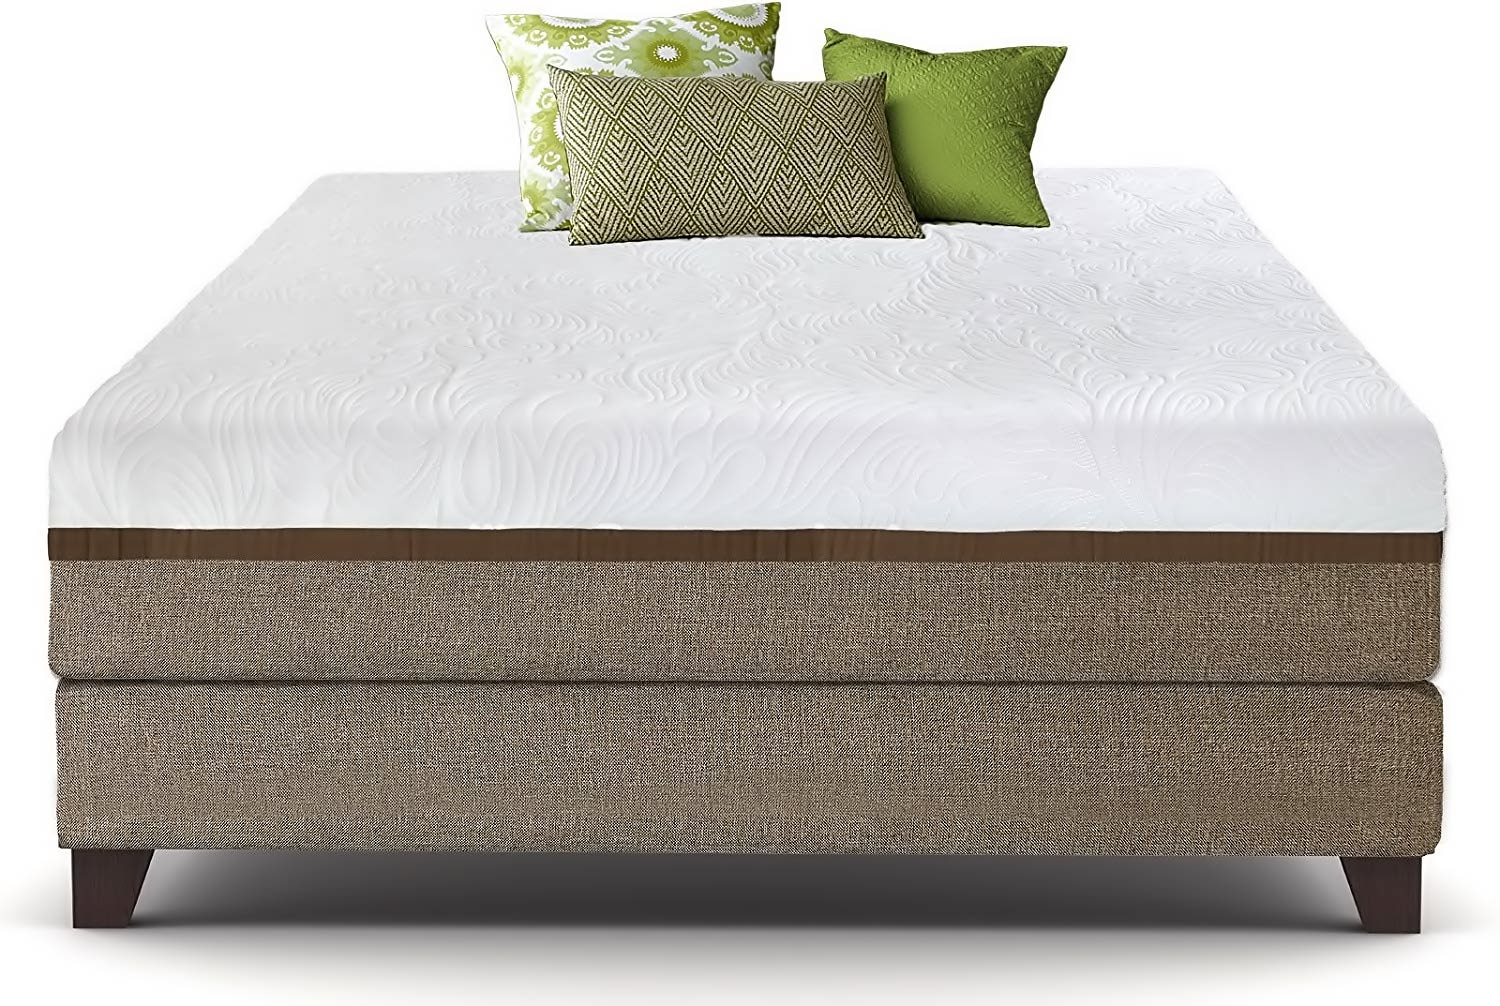 Live and Sleep Resort Ultra Cooling Gel Memory Foam Mattress